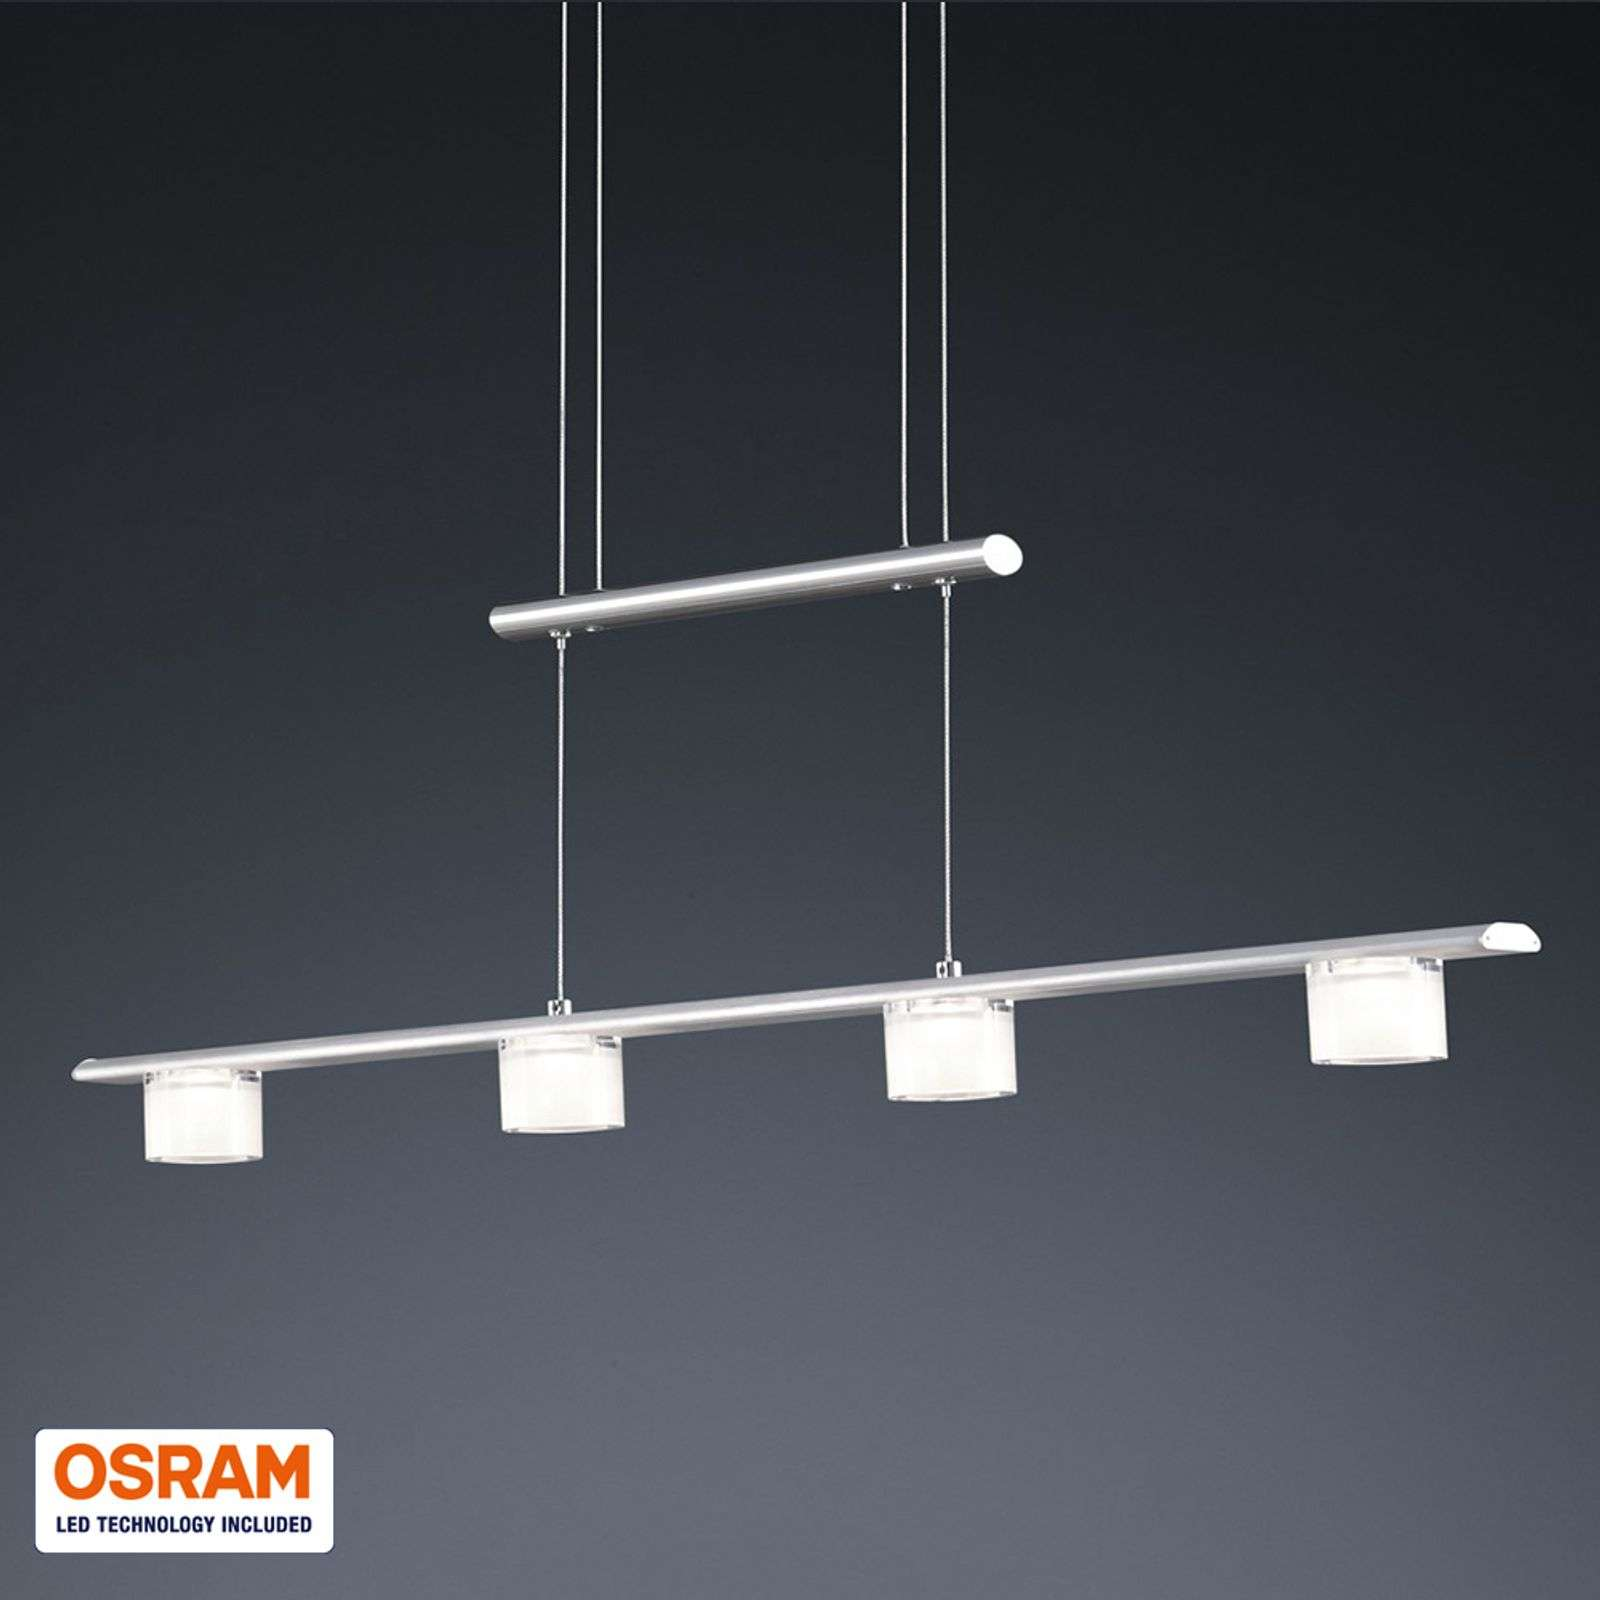 Suspension LED Gaye 4 lampes hauteur rég. 90 cm